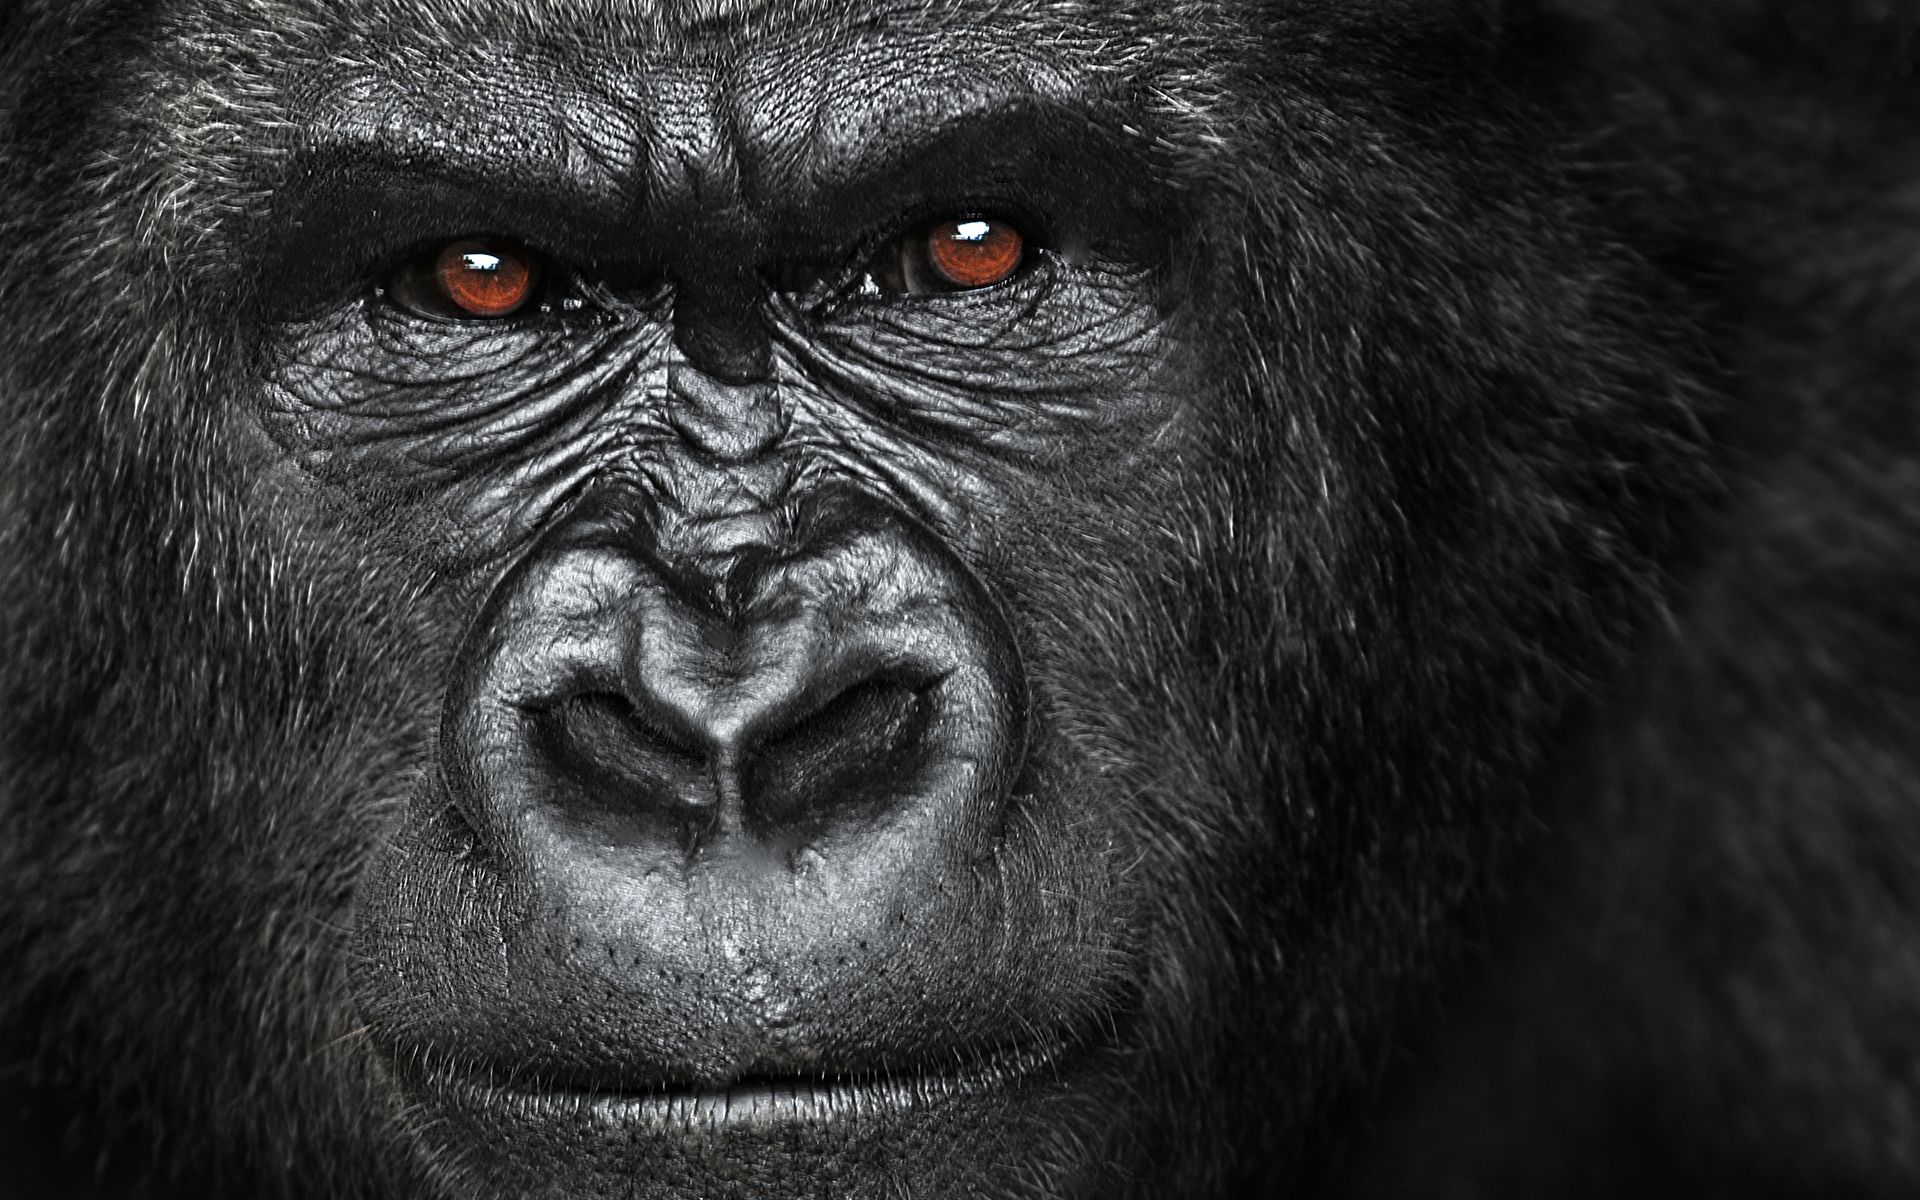 gorilla hd wallpapers, gorilla gorilla